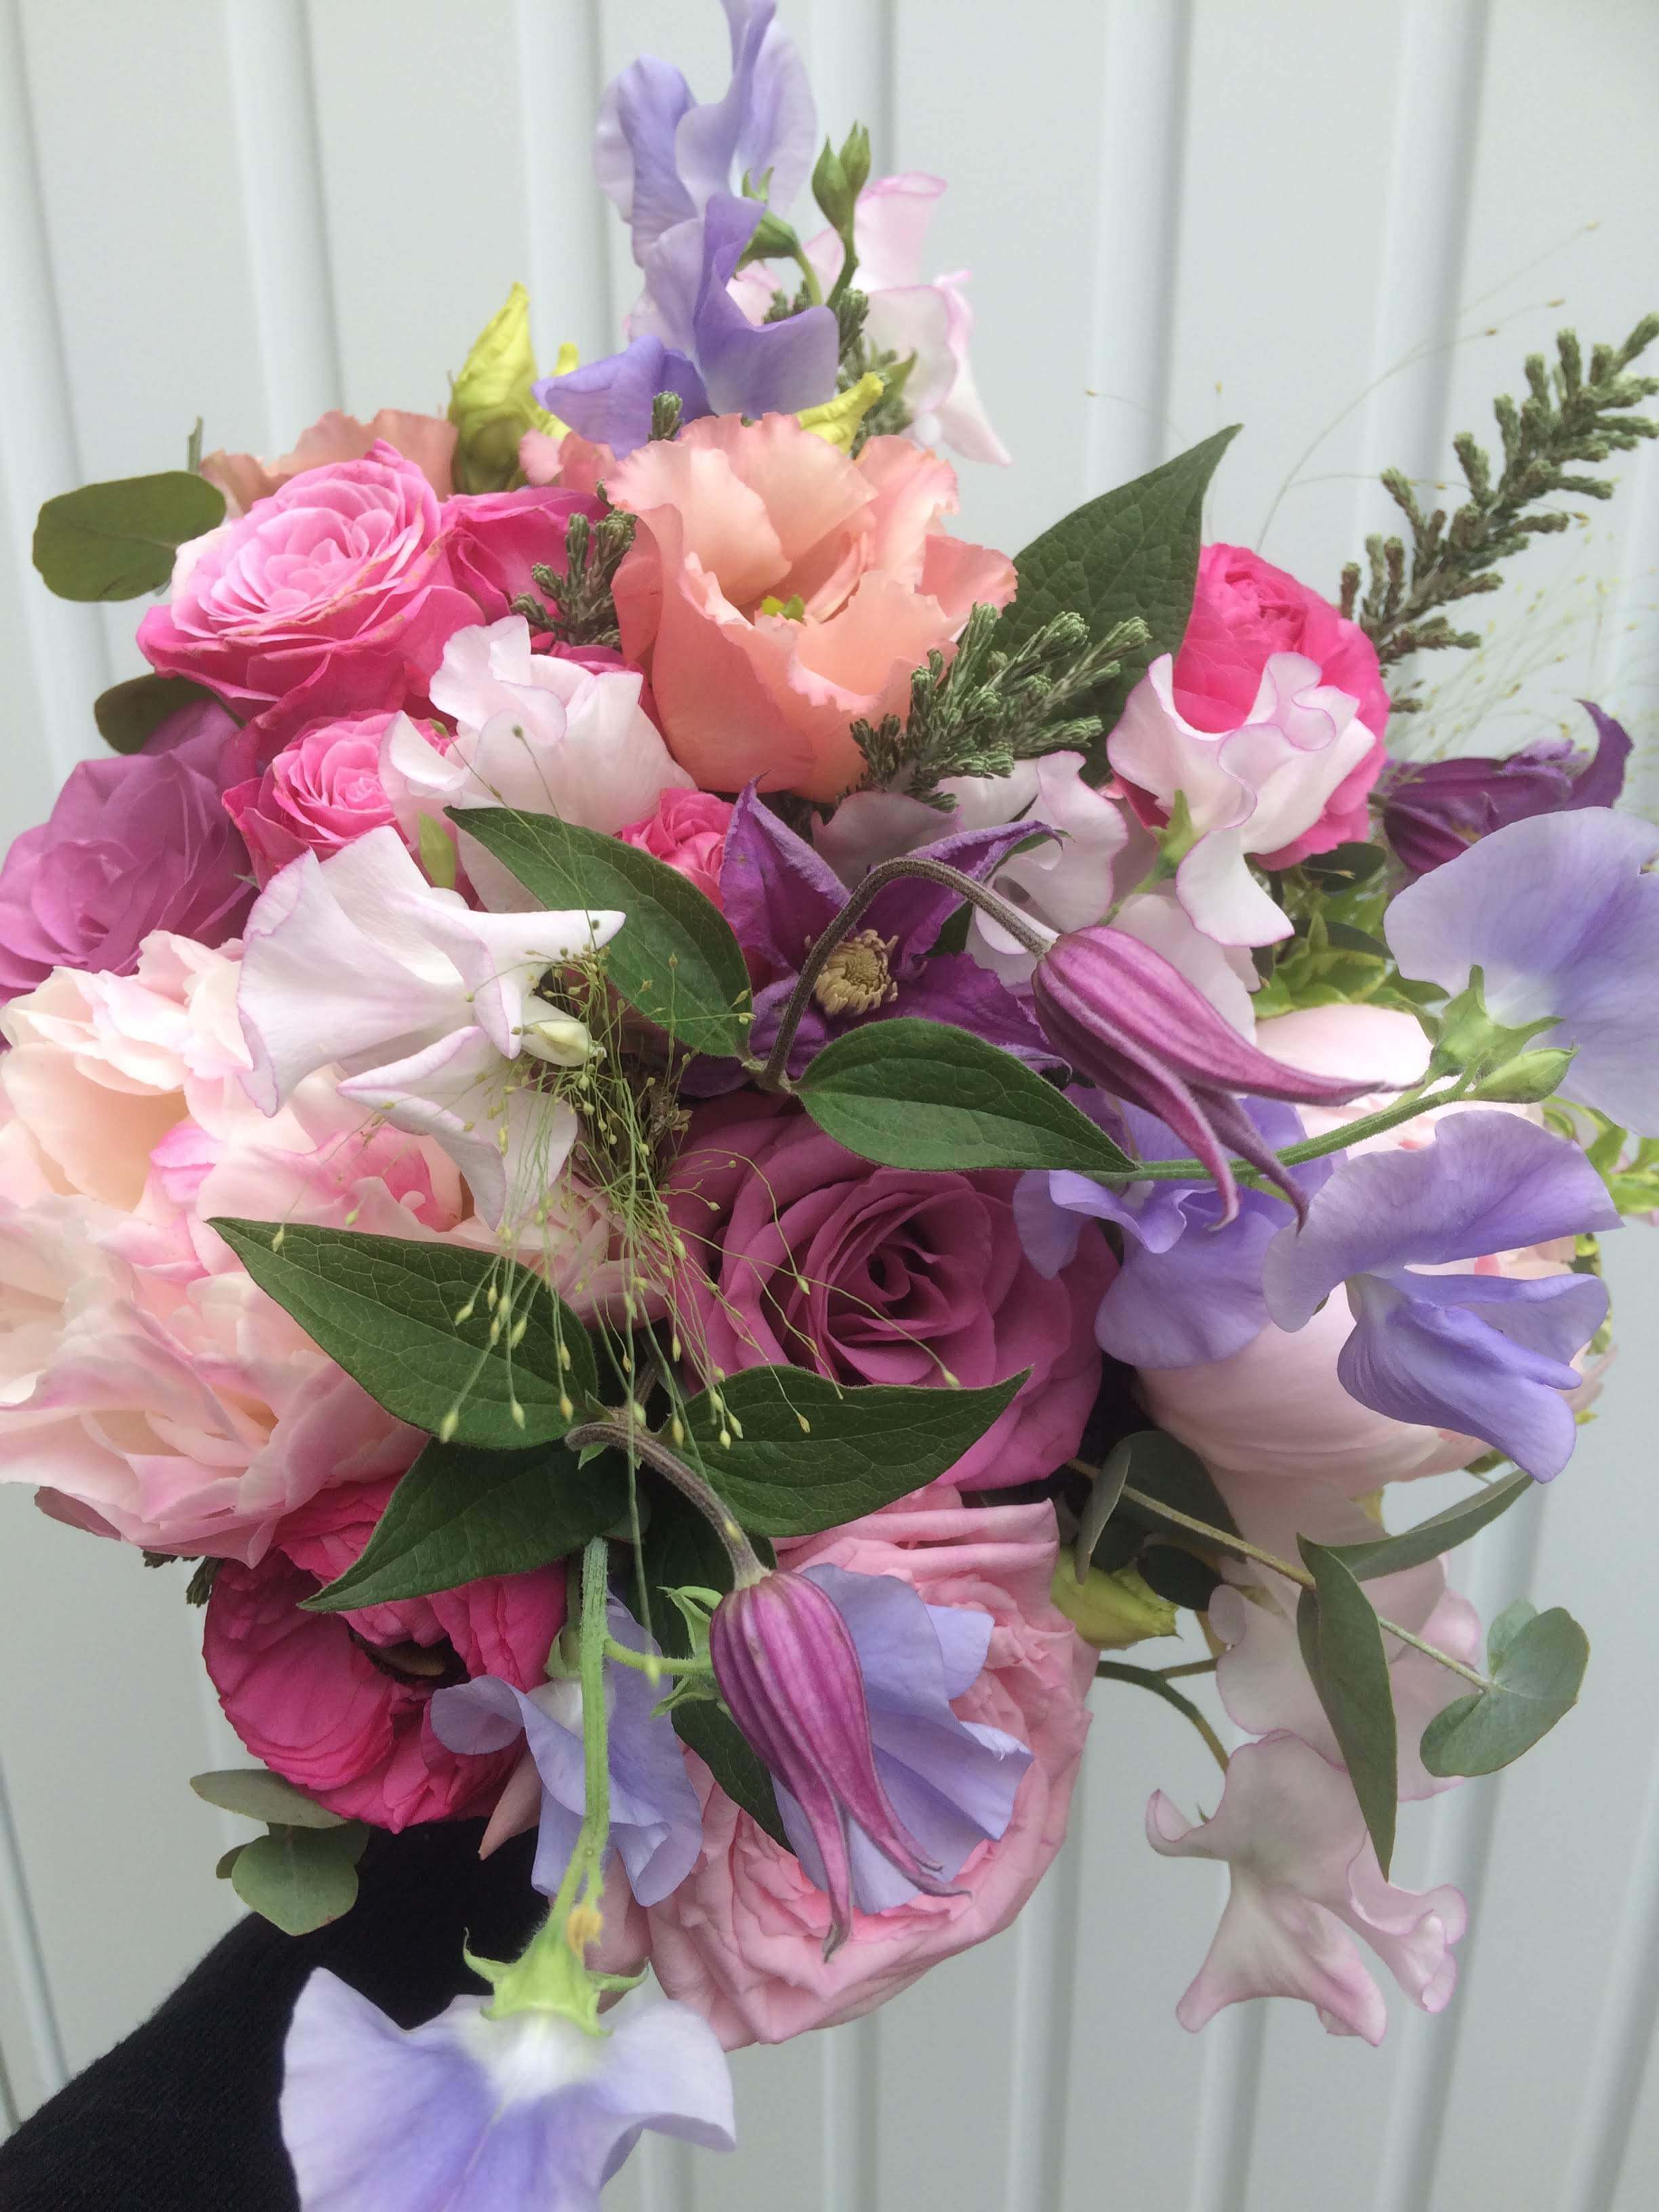 pink and purple bouquet with peonies, roses, sweet peas, clematis and lisianthus